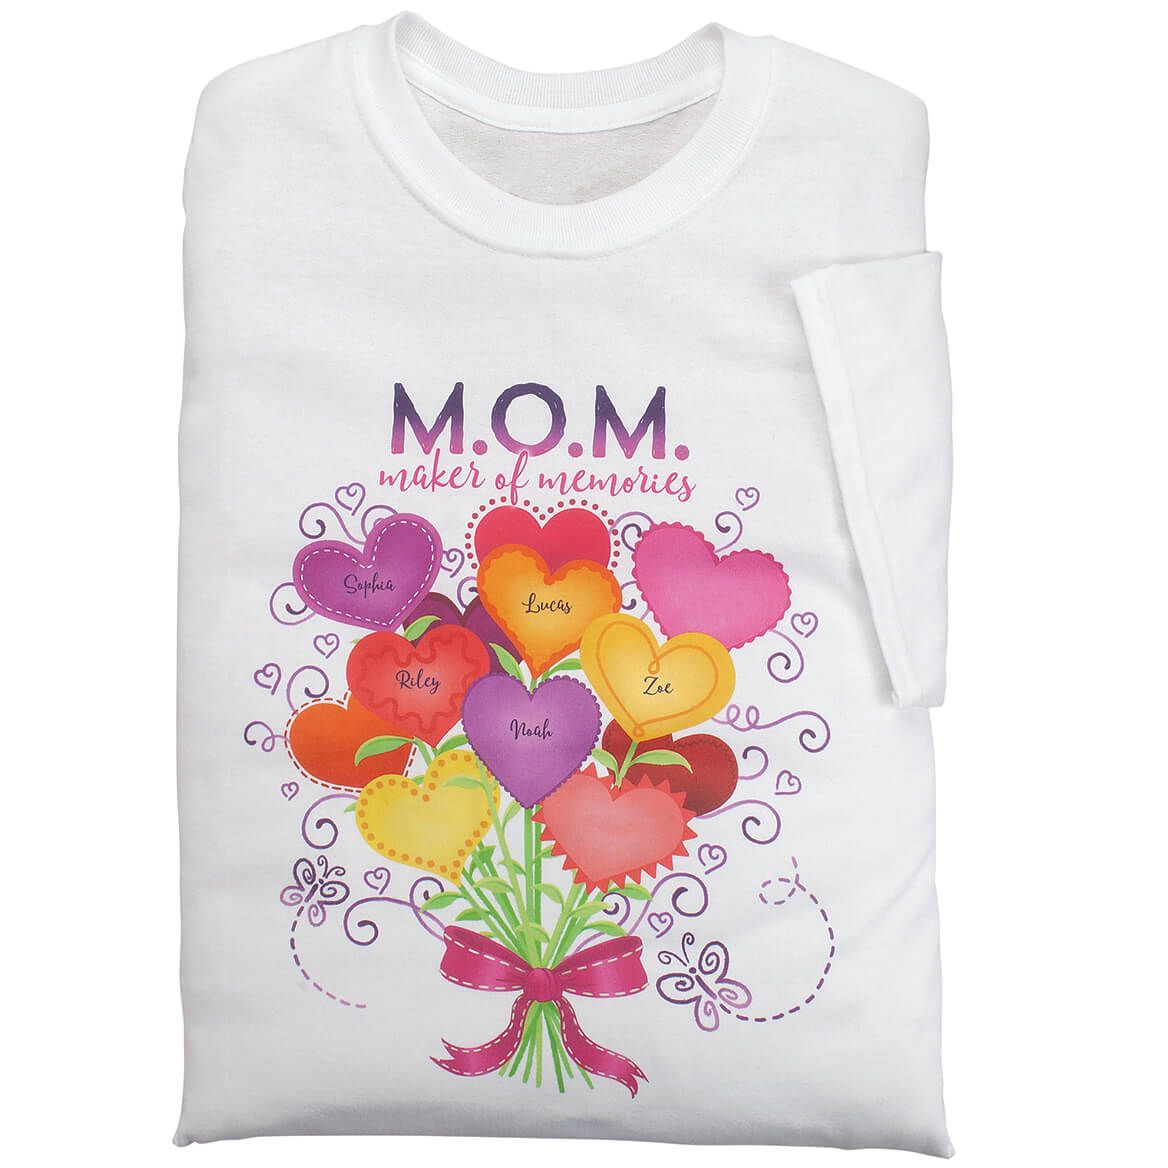 Personalized M.O.M. Maker of Memories T-Shirt-369030